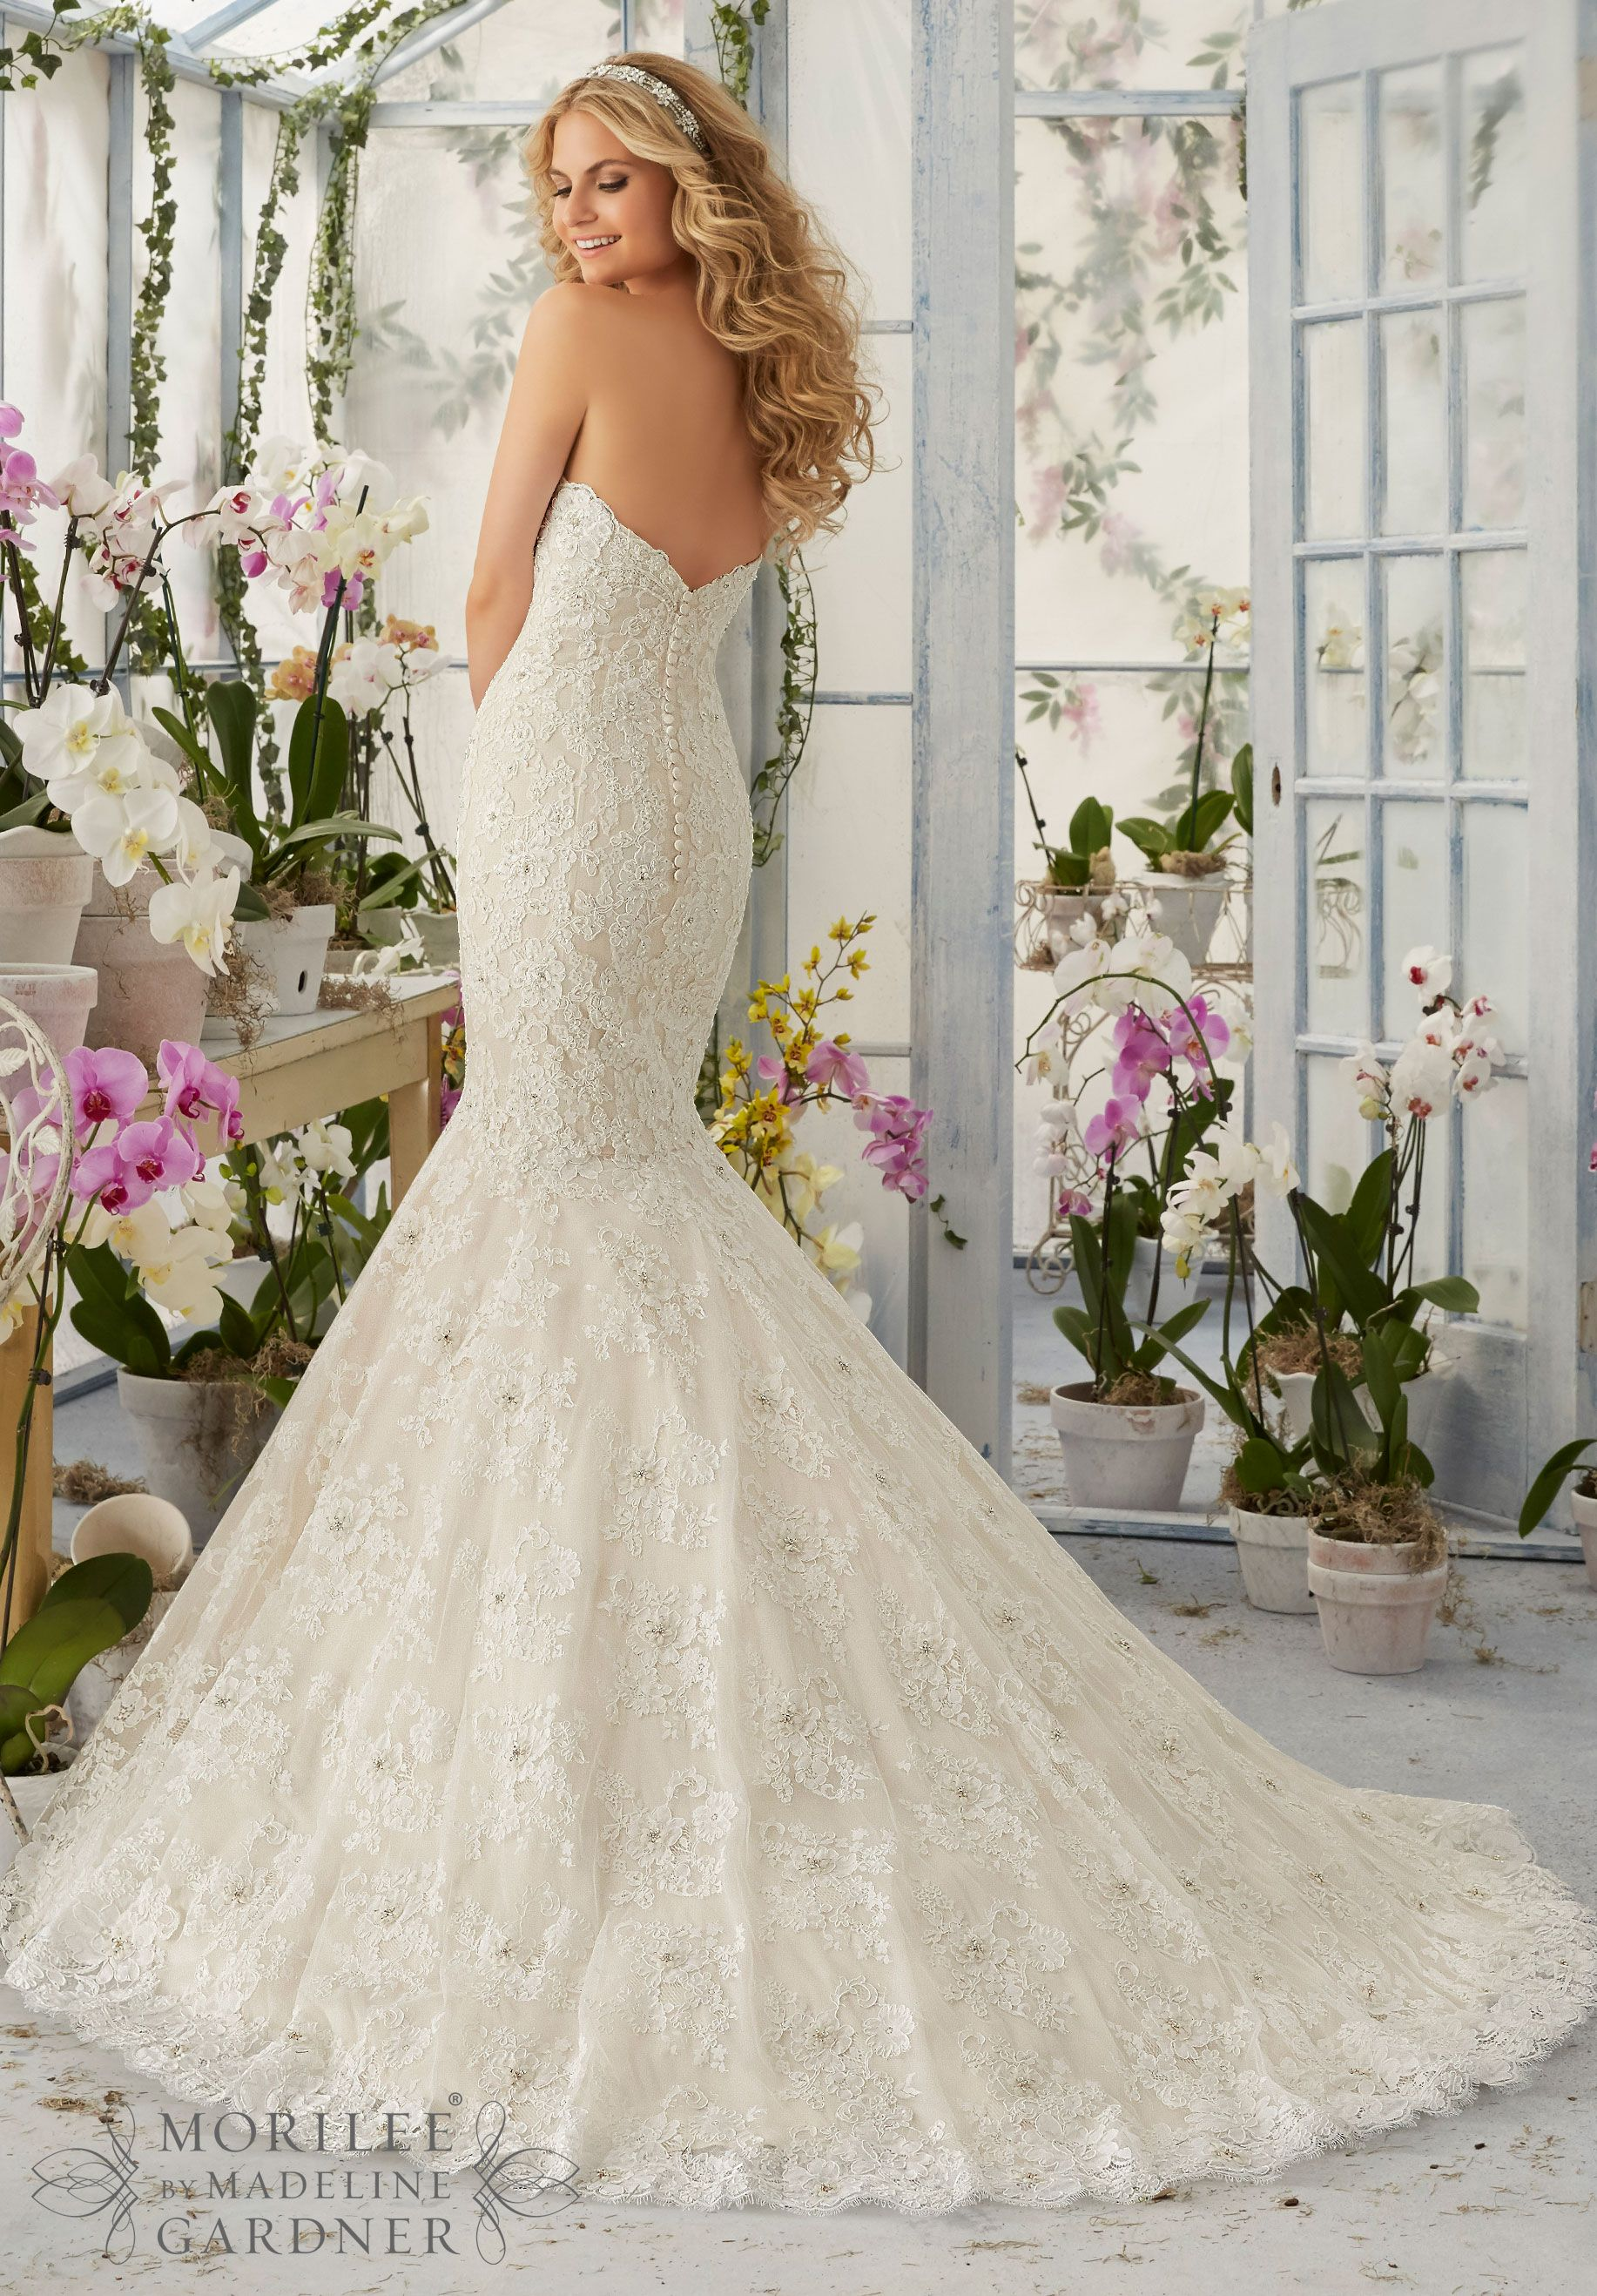 Wedding dress allover alencon lace mermaid gown with delicate